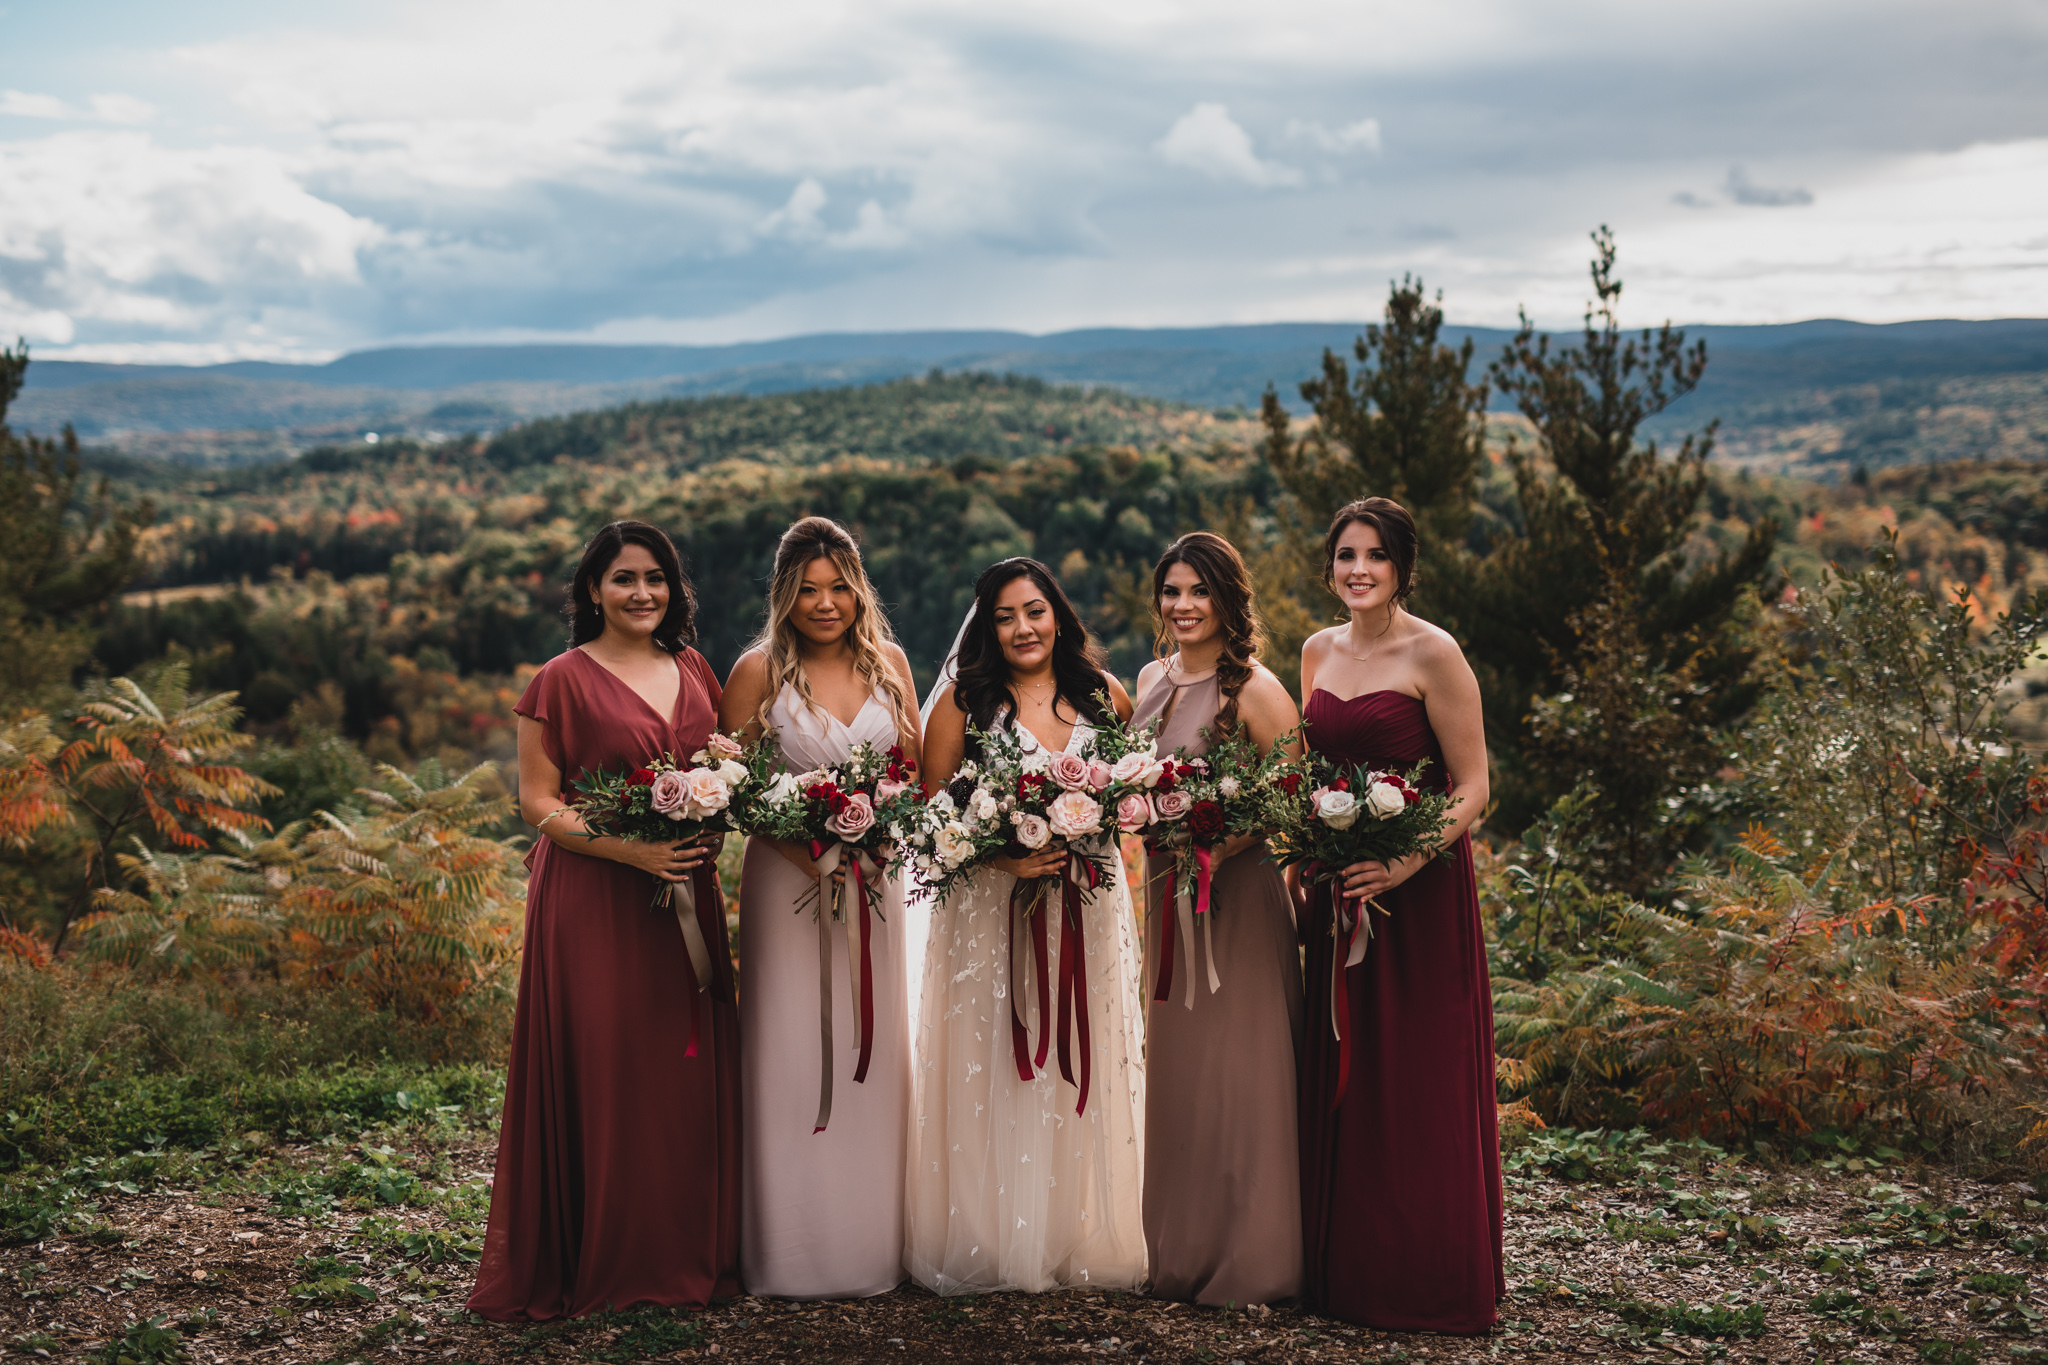 Mixed blush, burgundy, mauve bridesmaid dresses